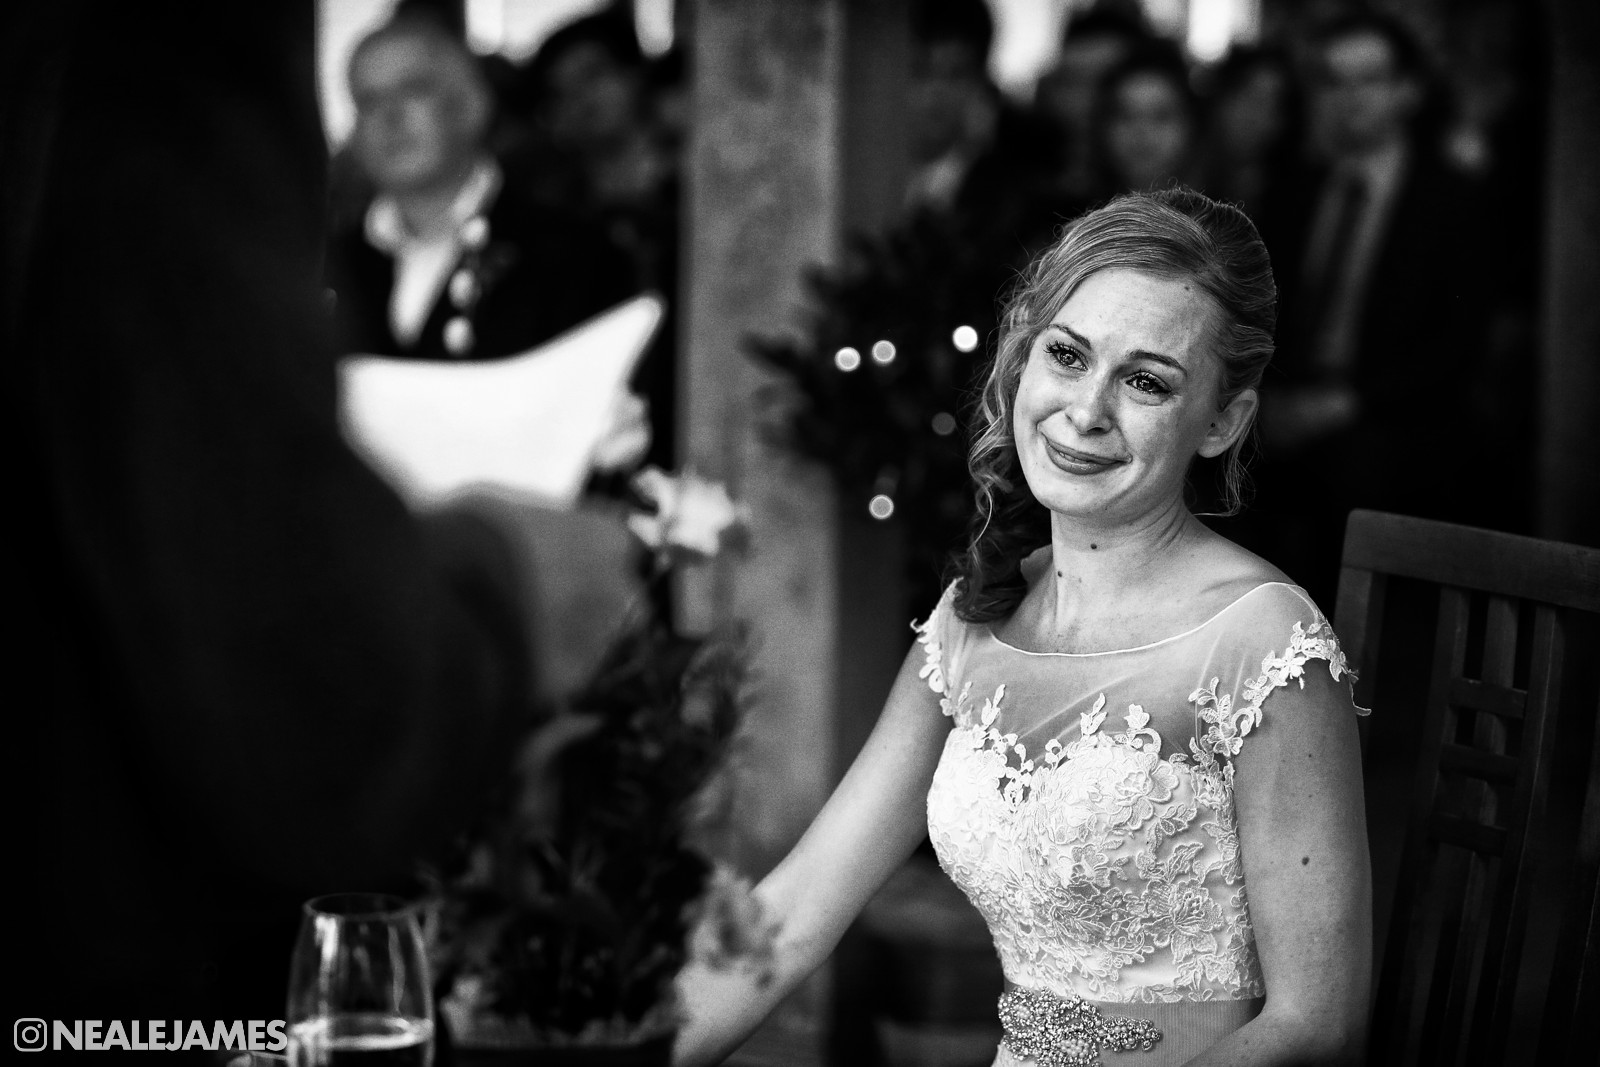 A black and white wedding picture of an emotional bride during her ceremony at Rivervale Barn Yateley